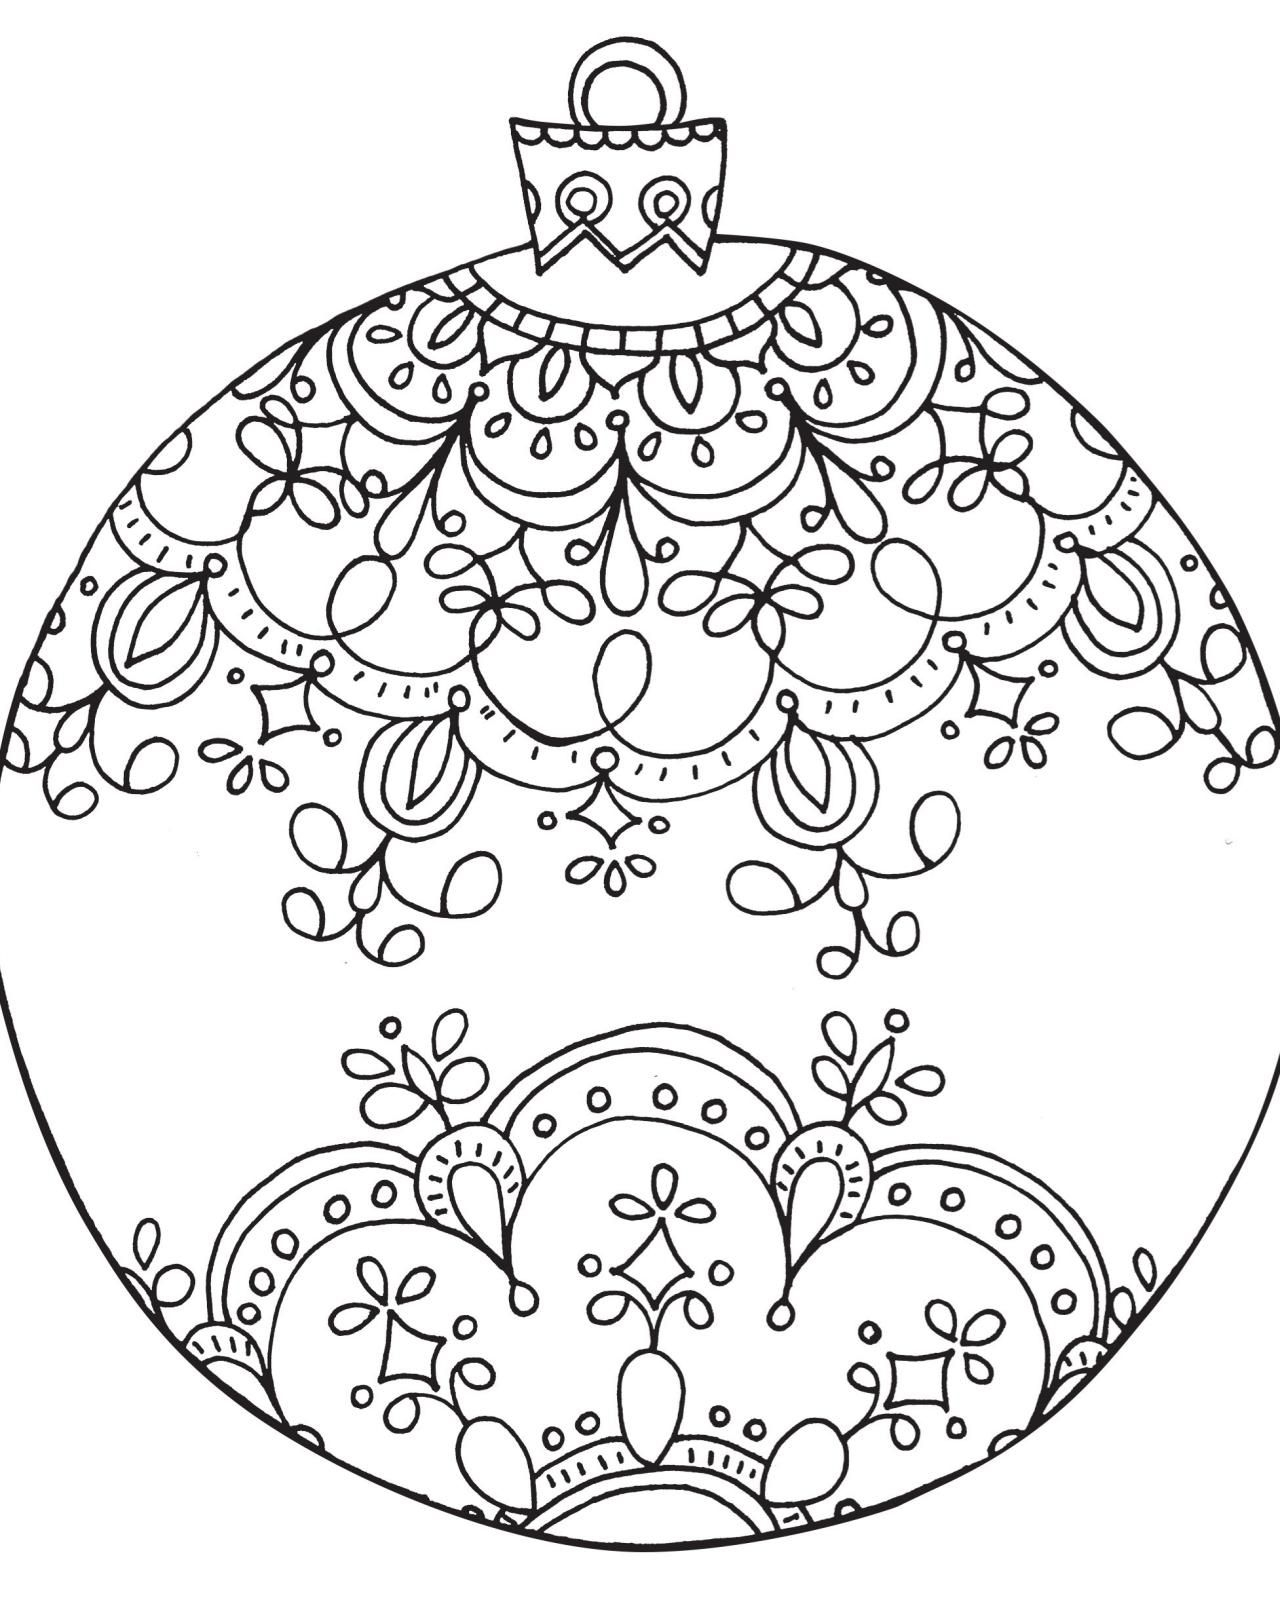 1280x1600 Best Of Free Printable Coloring Pages For Adults Free Coloring